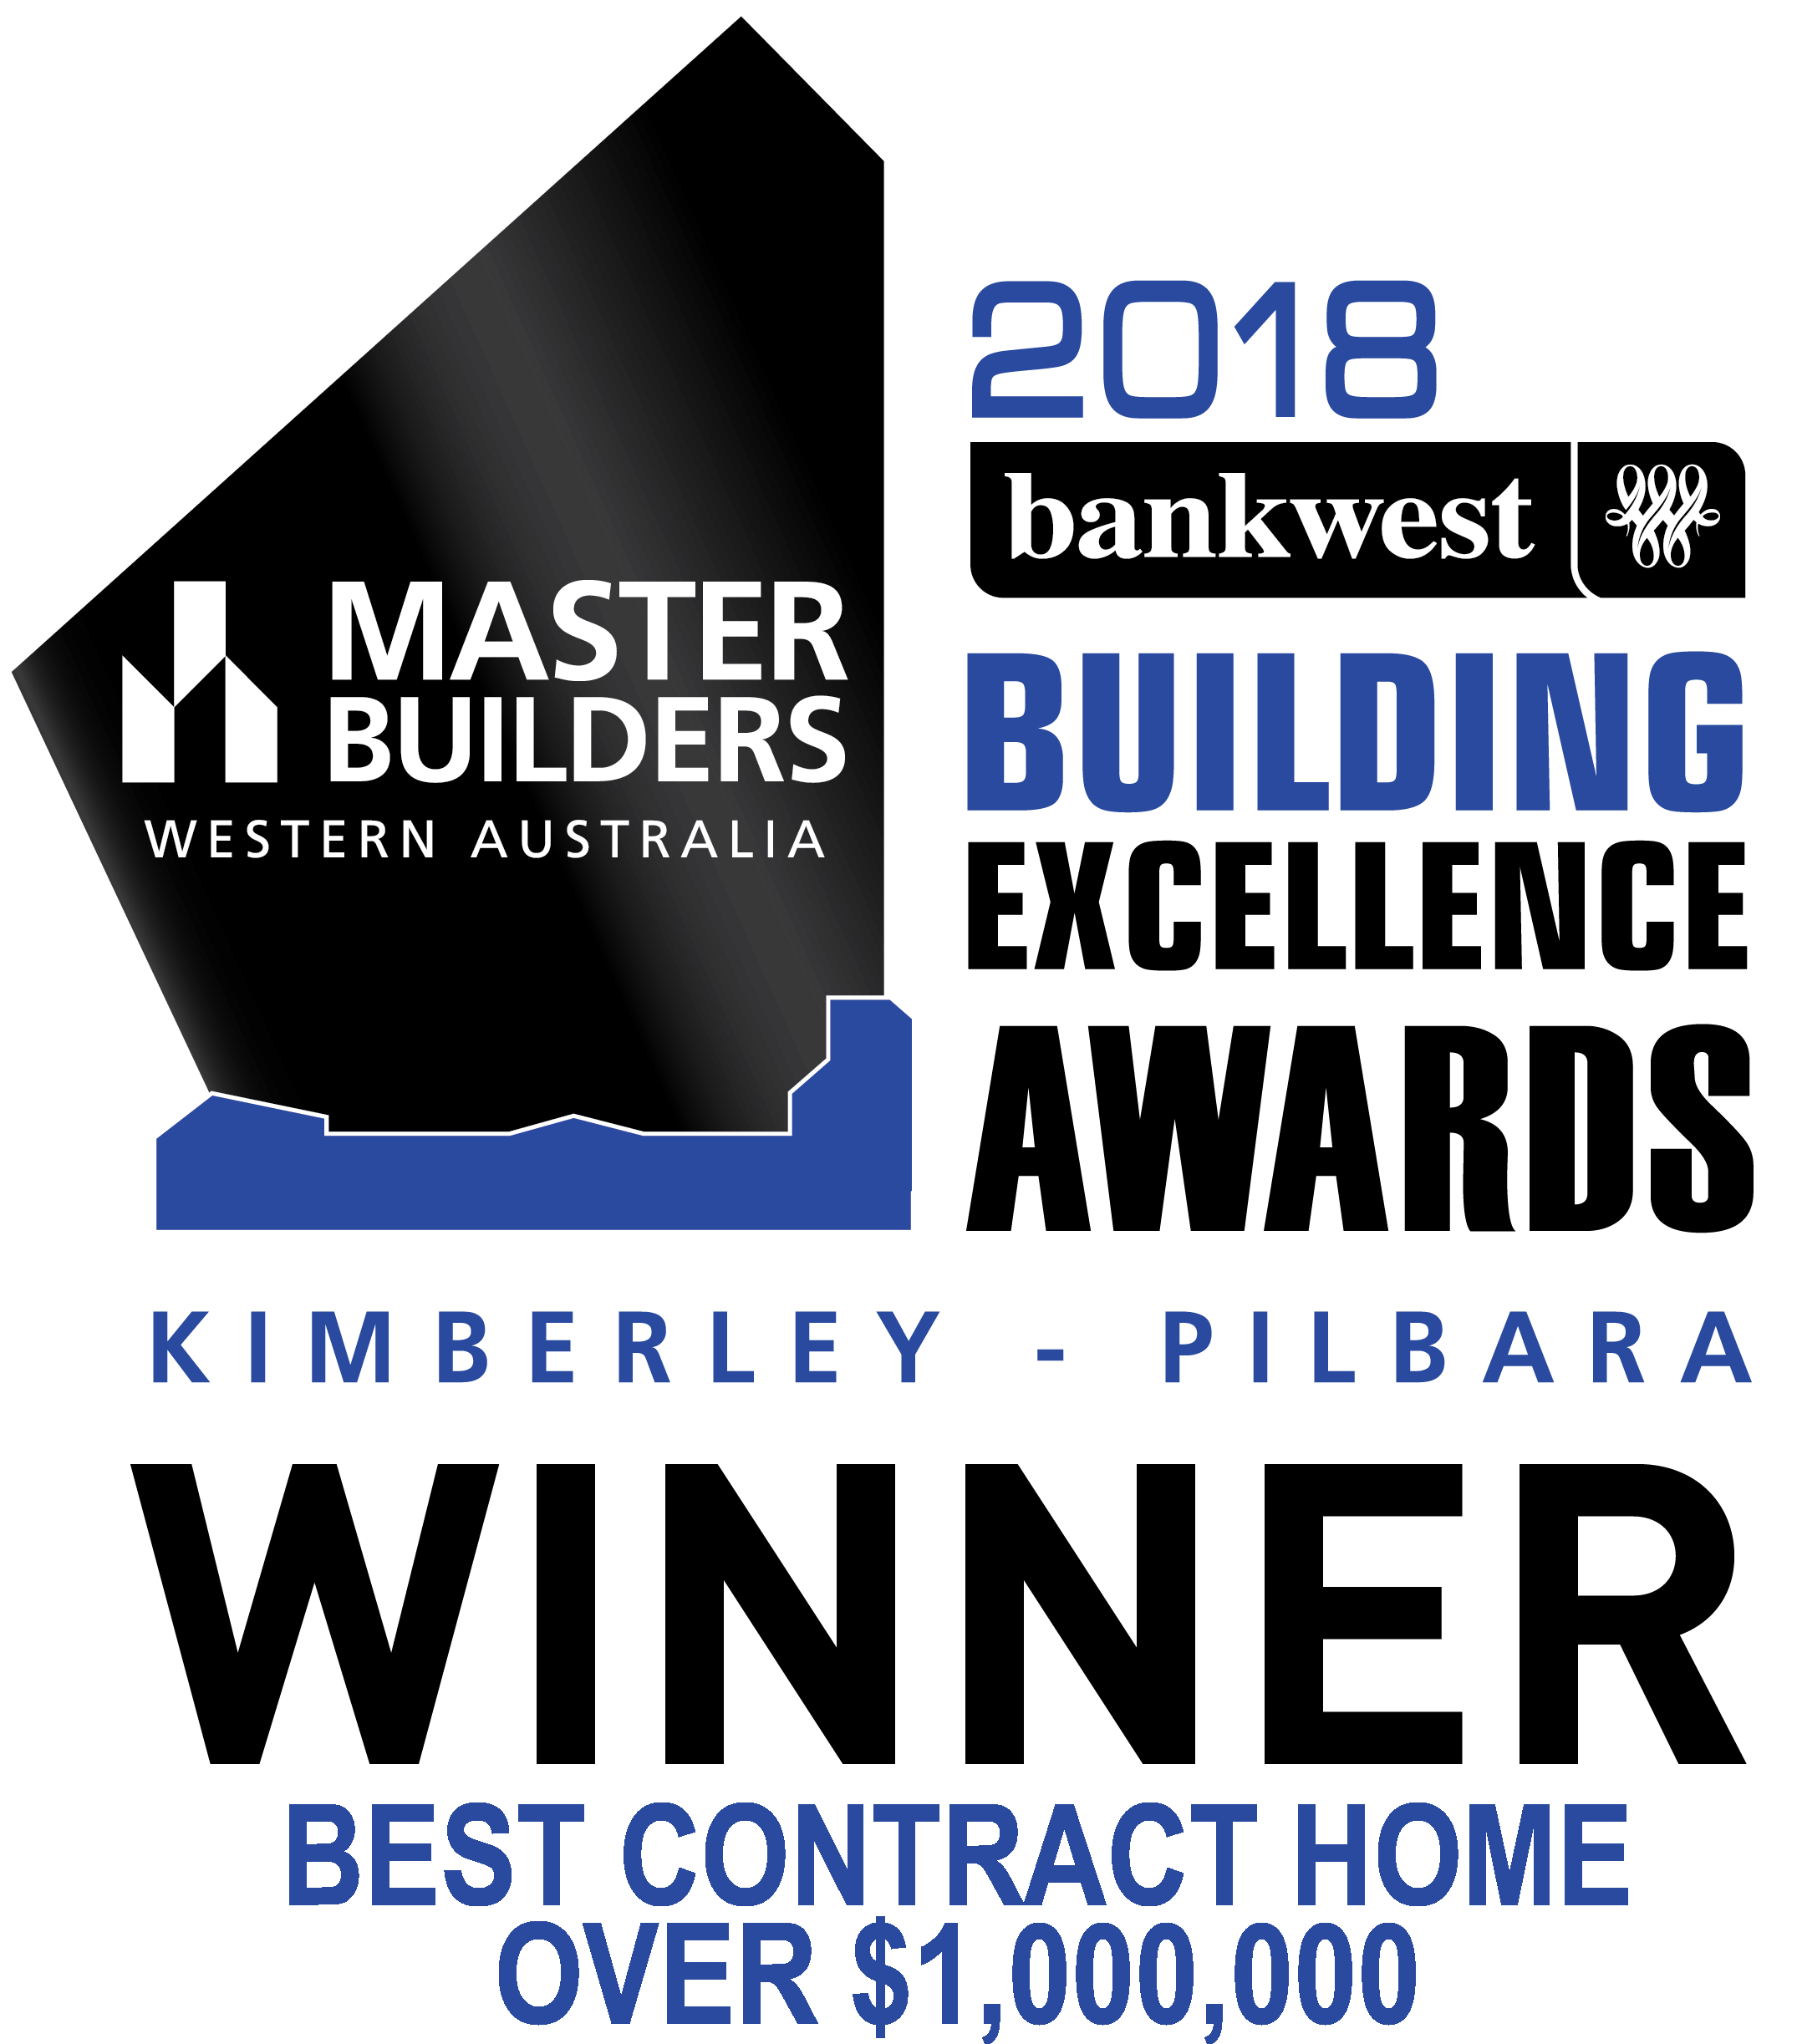 2018 MBA Building Excellence Award Winner - Broome Builders